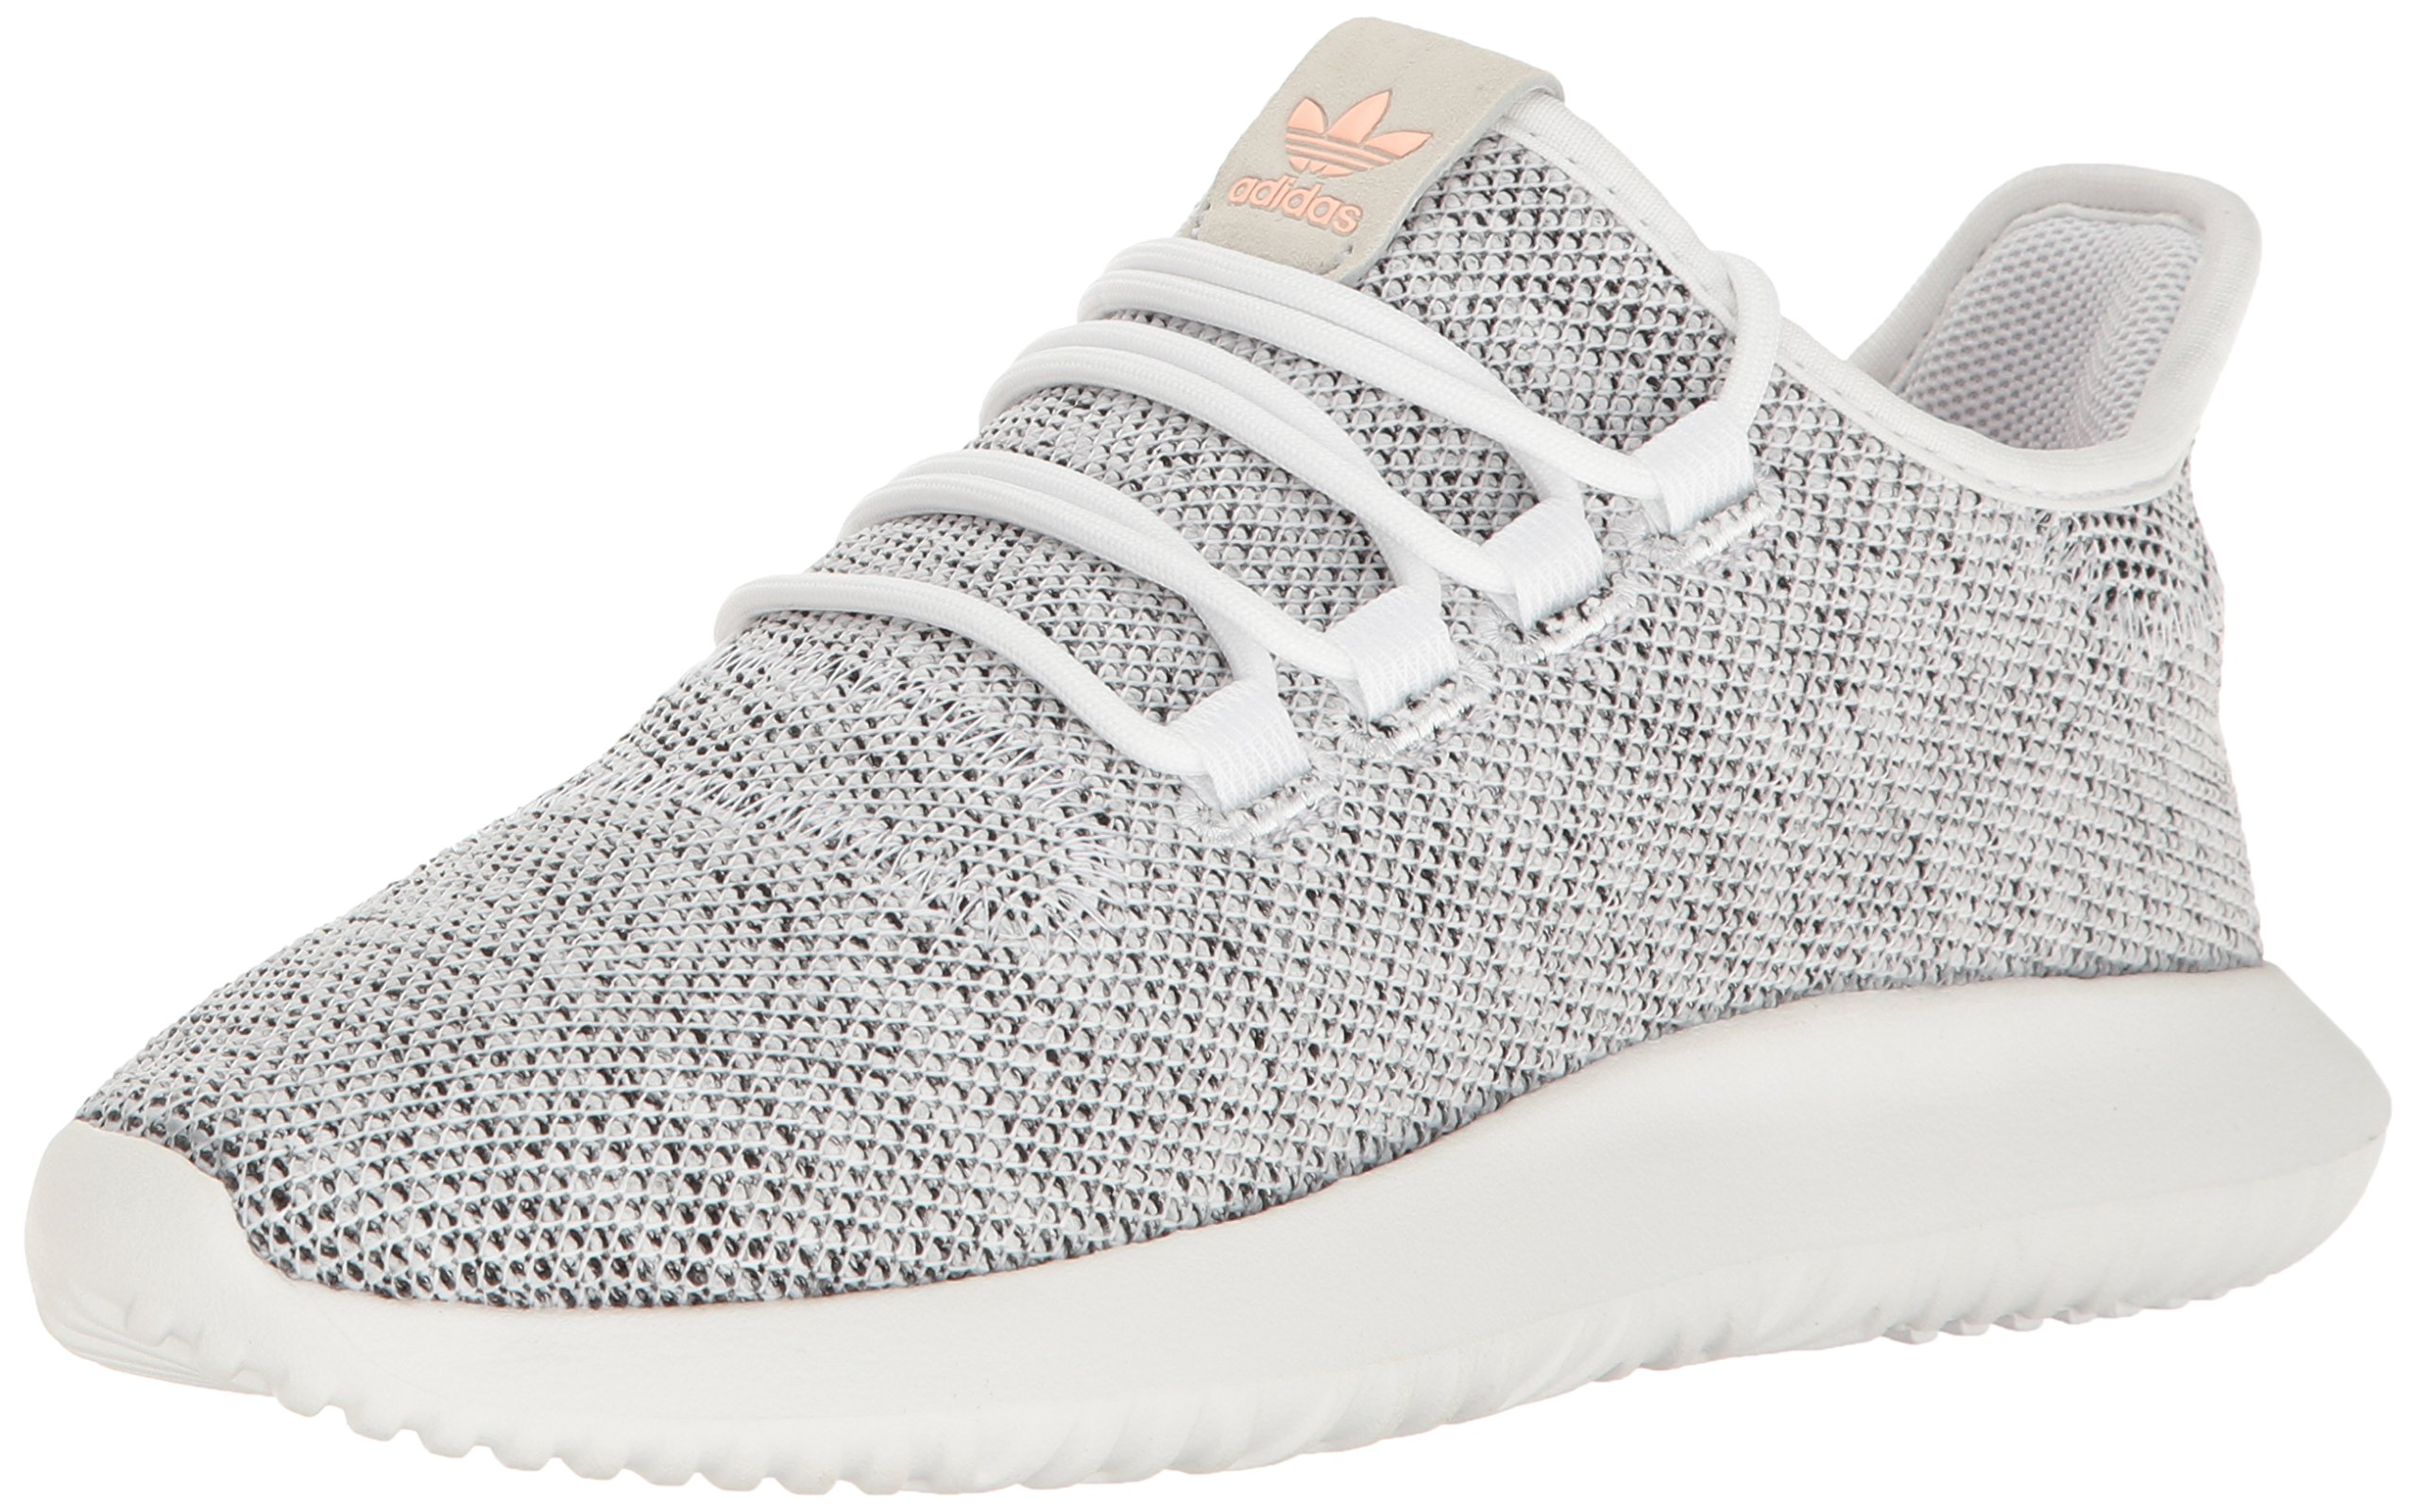 the best attitude 13c71 3e3f2 adidas Originals Women's Tubular Shadow W Running Shoe, White/Pearl  Grey/Haze Coral, 8 M US